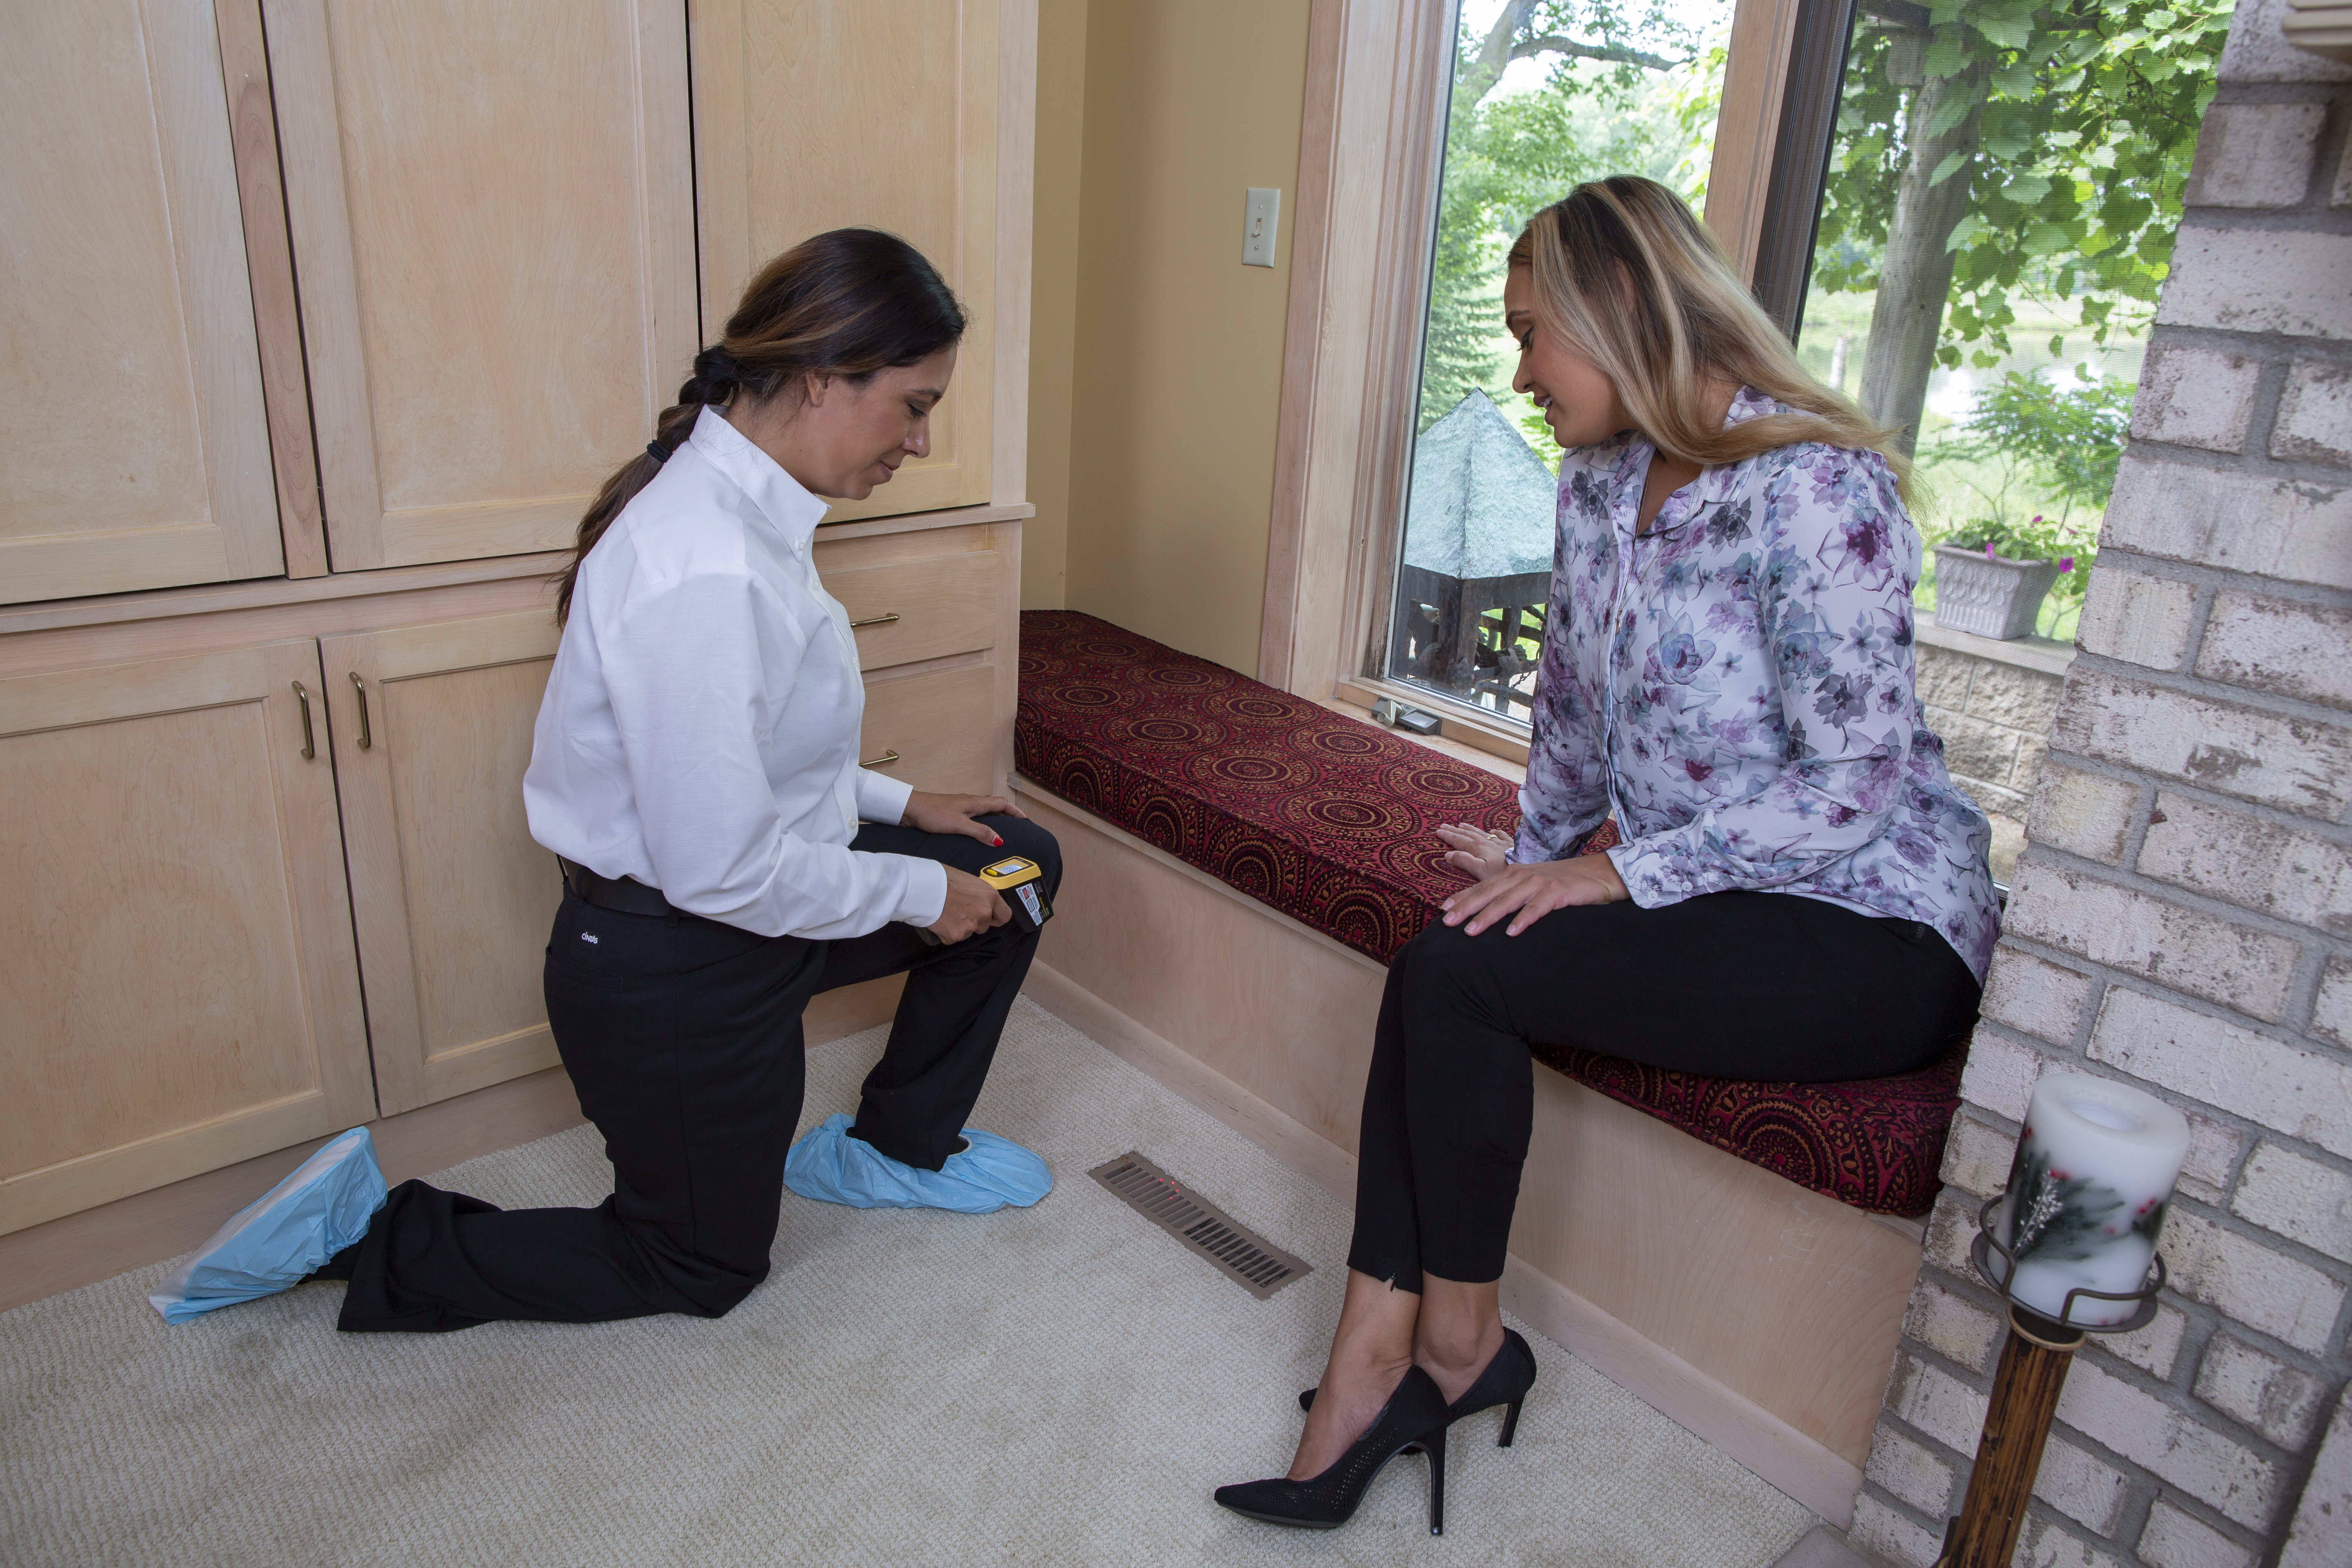 A female ACE technician kneeling holding an infrared thermometer near a vent  with a customer nearby